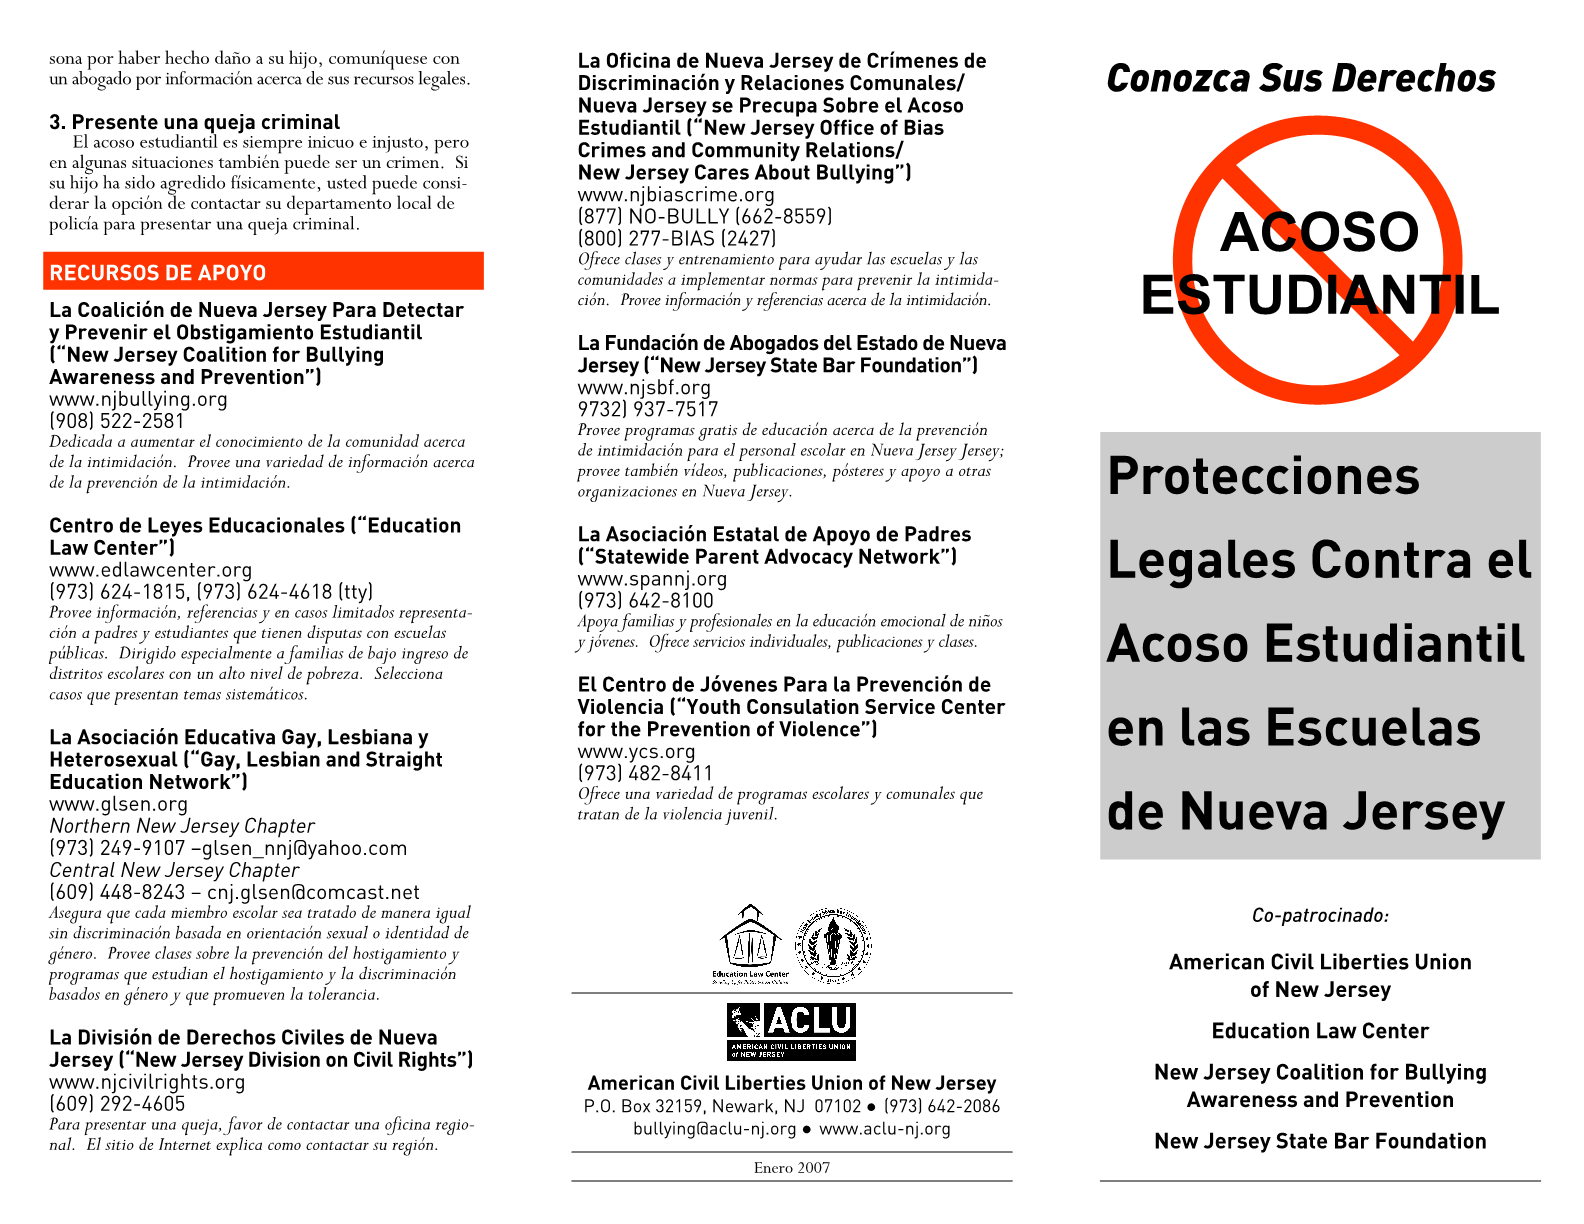 Legal Protections Against Bullying in New Jersey Schools (Spanish) Protecciones Legales Contra el Acoso Estudiantil en las Escuelas de Nueva Jersey